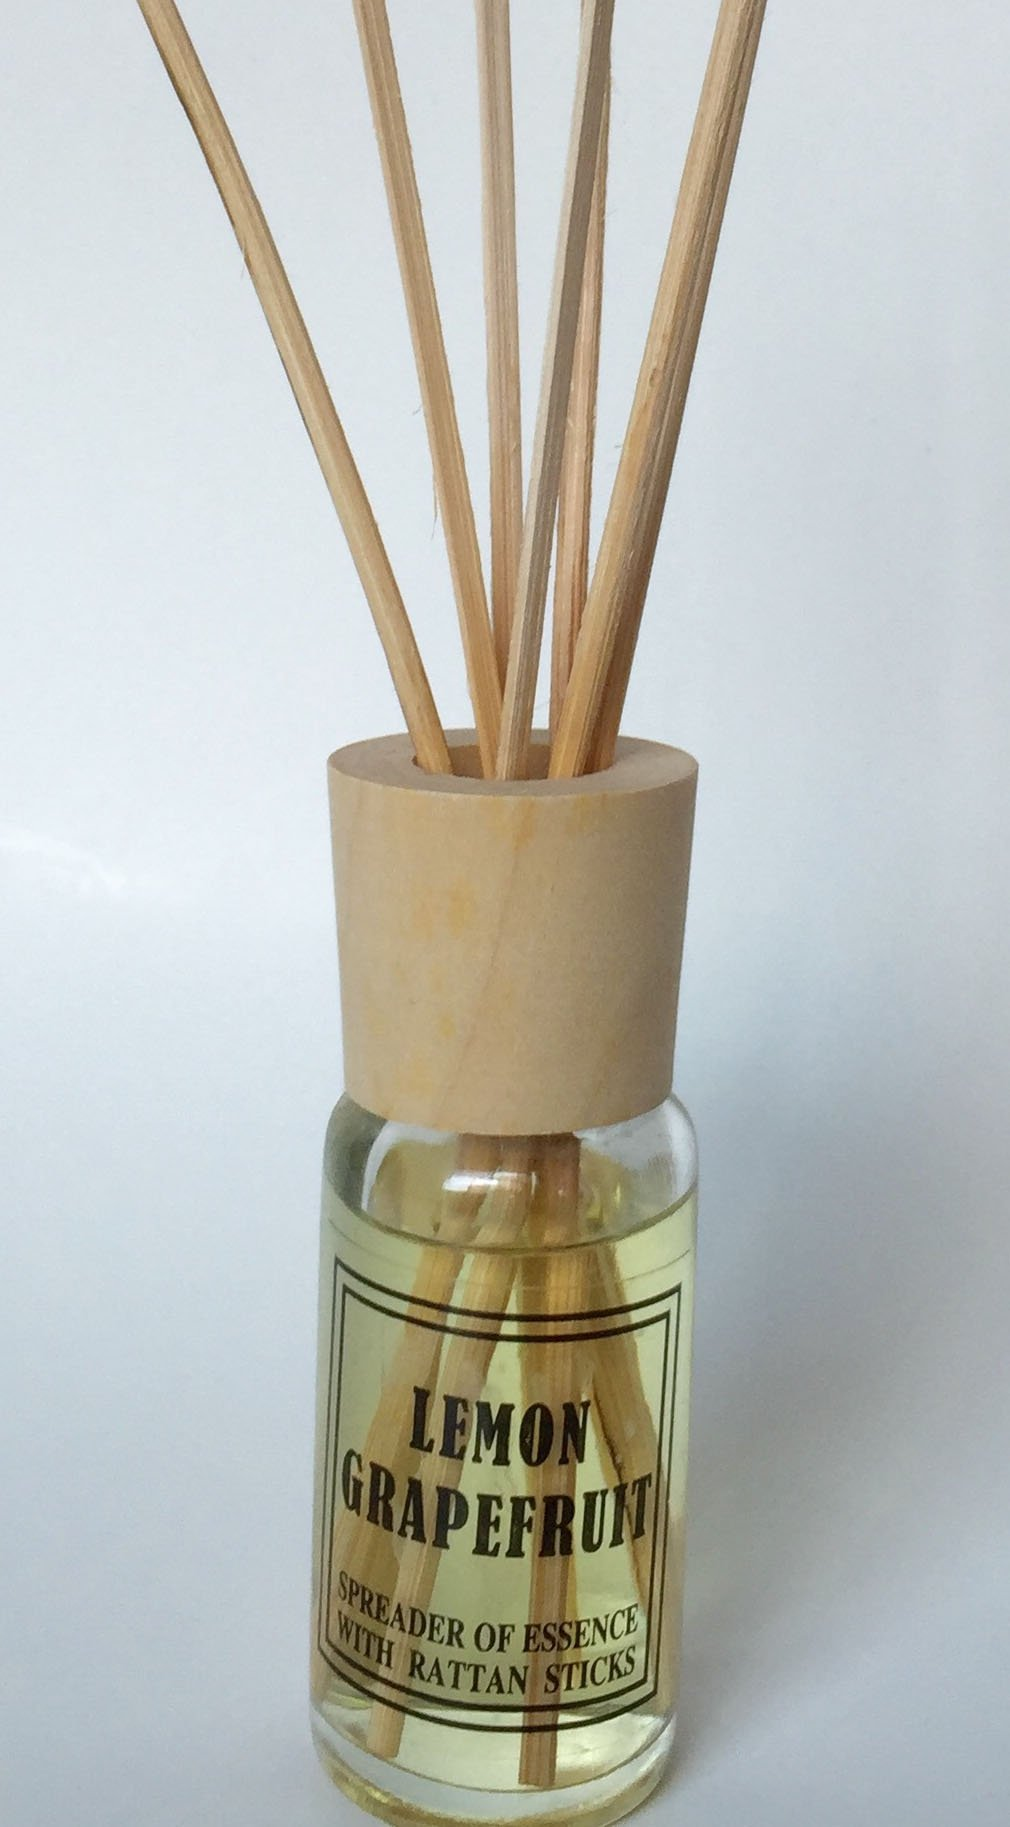 Mood Therapy 18 Sets Fragrance Oil Reed Diffuser Sets Wholesale Lot (18 x 1.2 oz) (Case of 18) by Mood Therapy (Image #2)